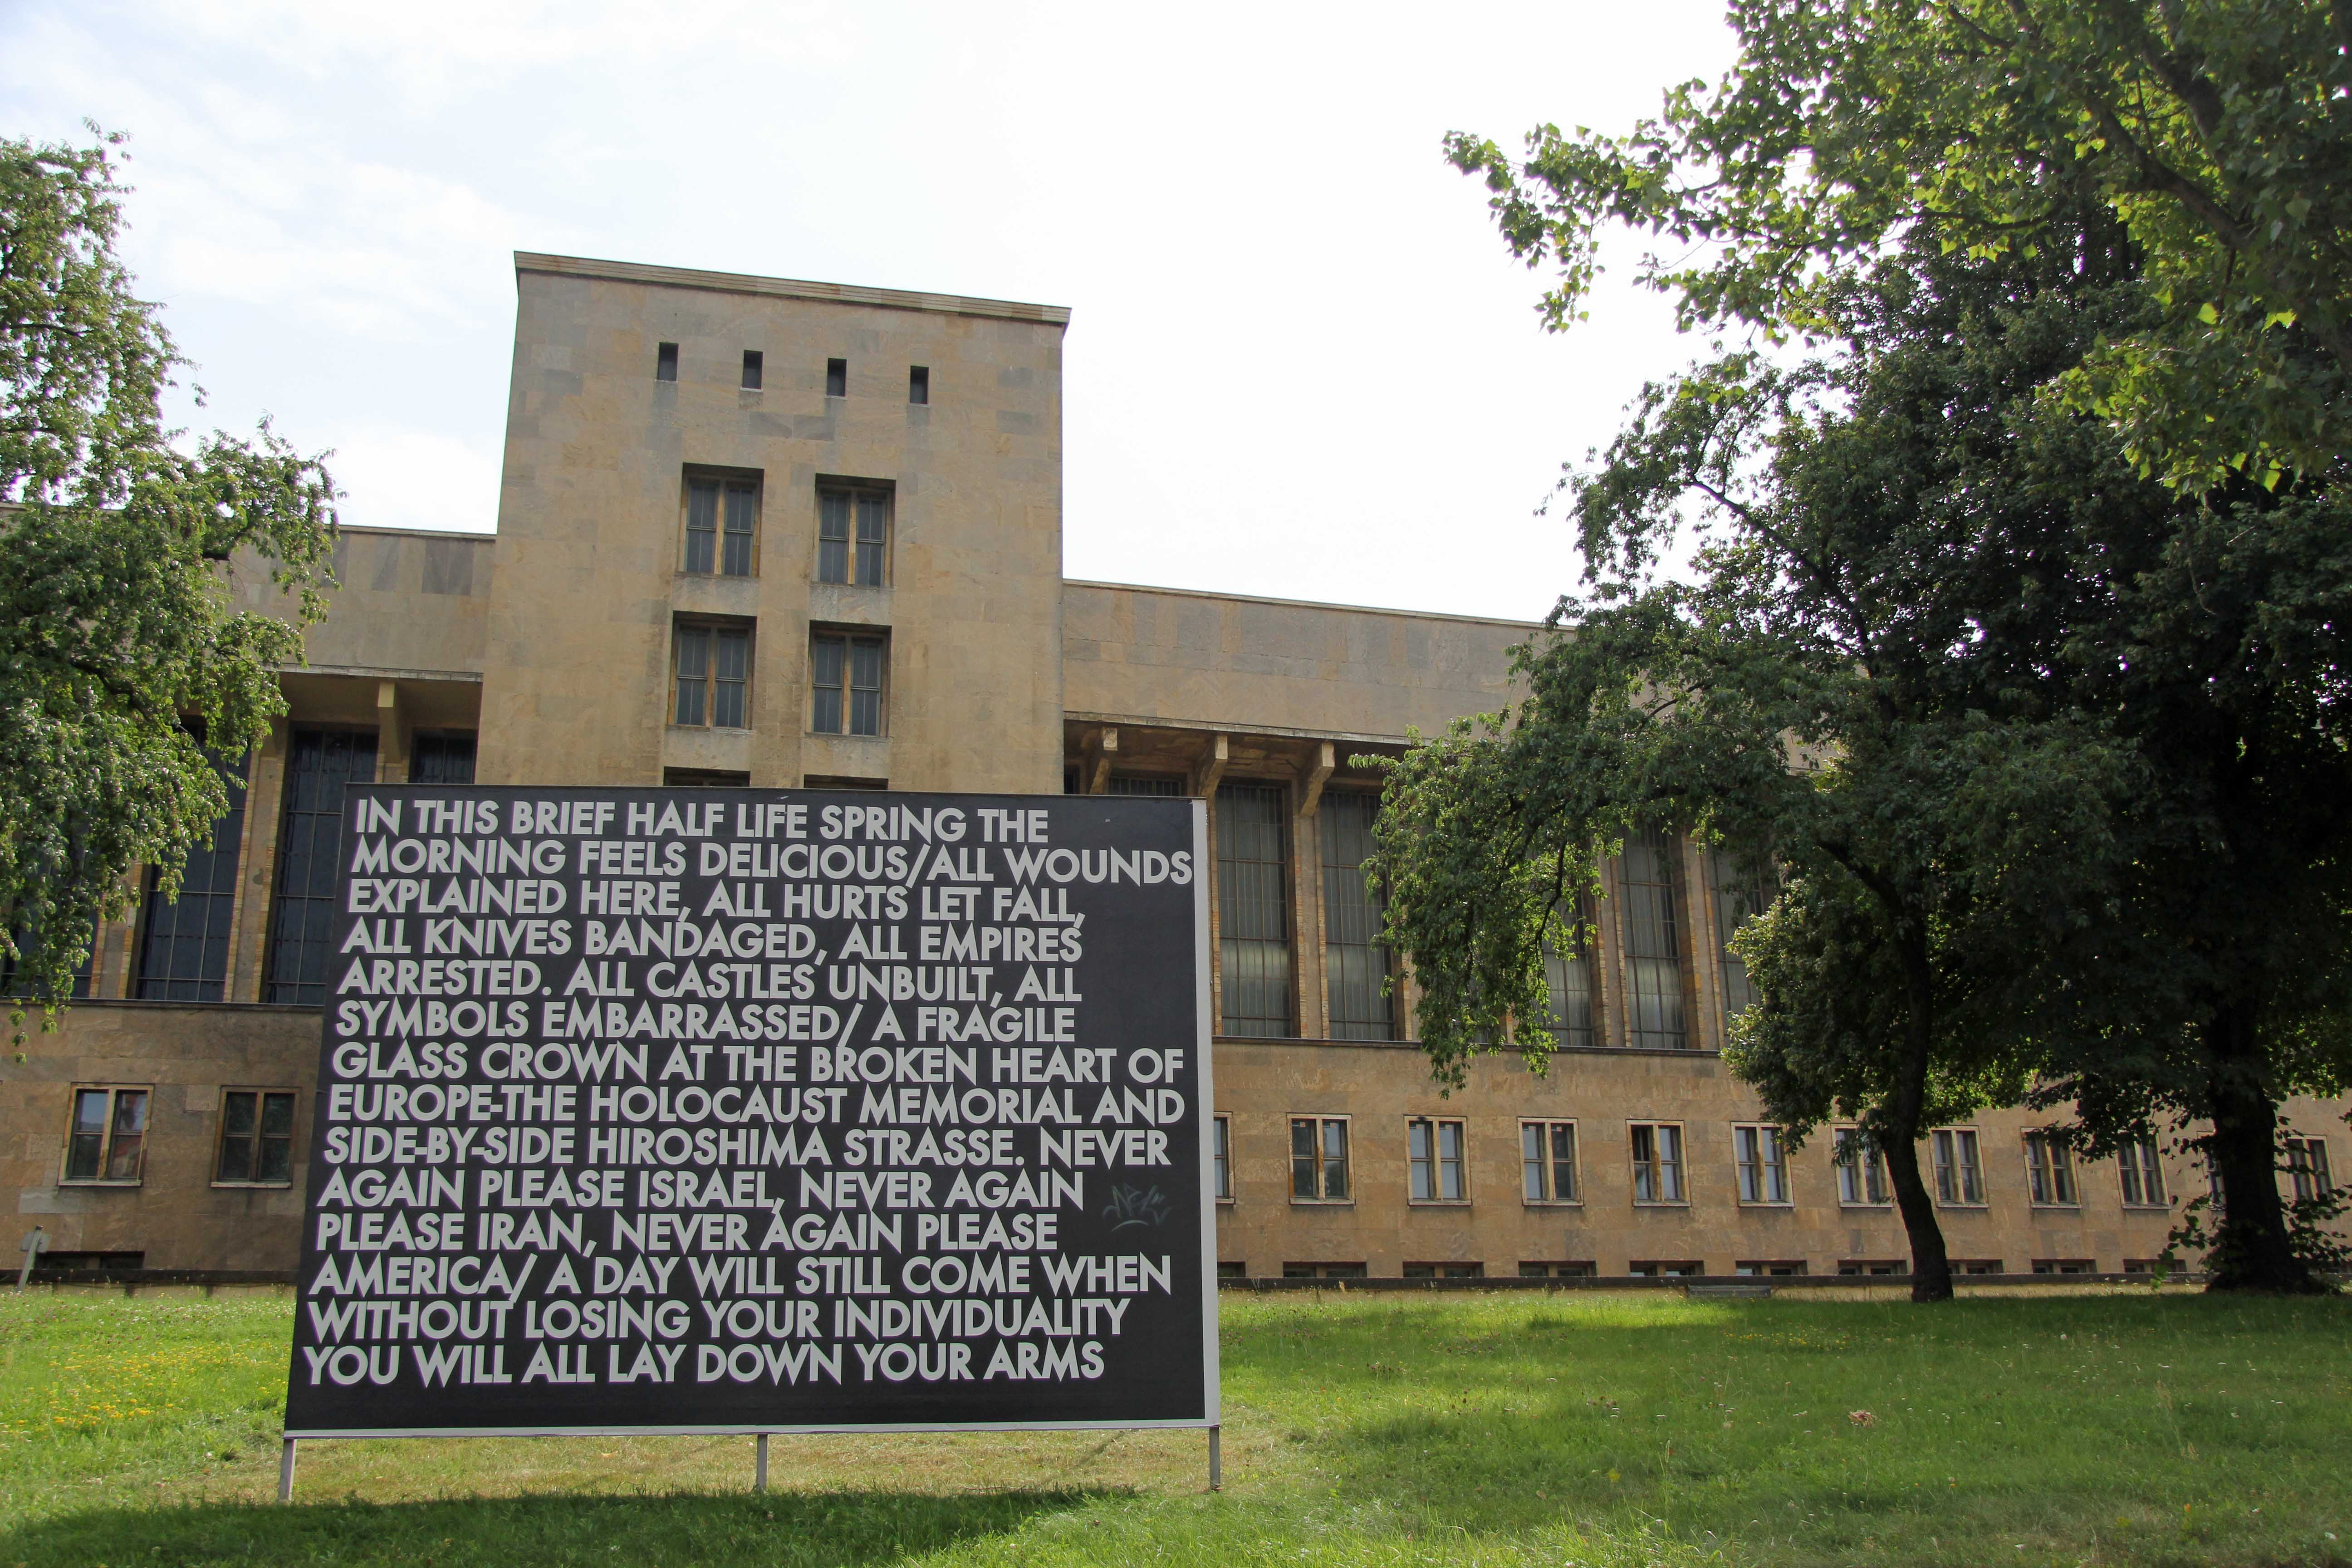 In this brief half life spring – a billboard installation by Robert Montgomery at the former Tempelhof Airport in Berlin